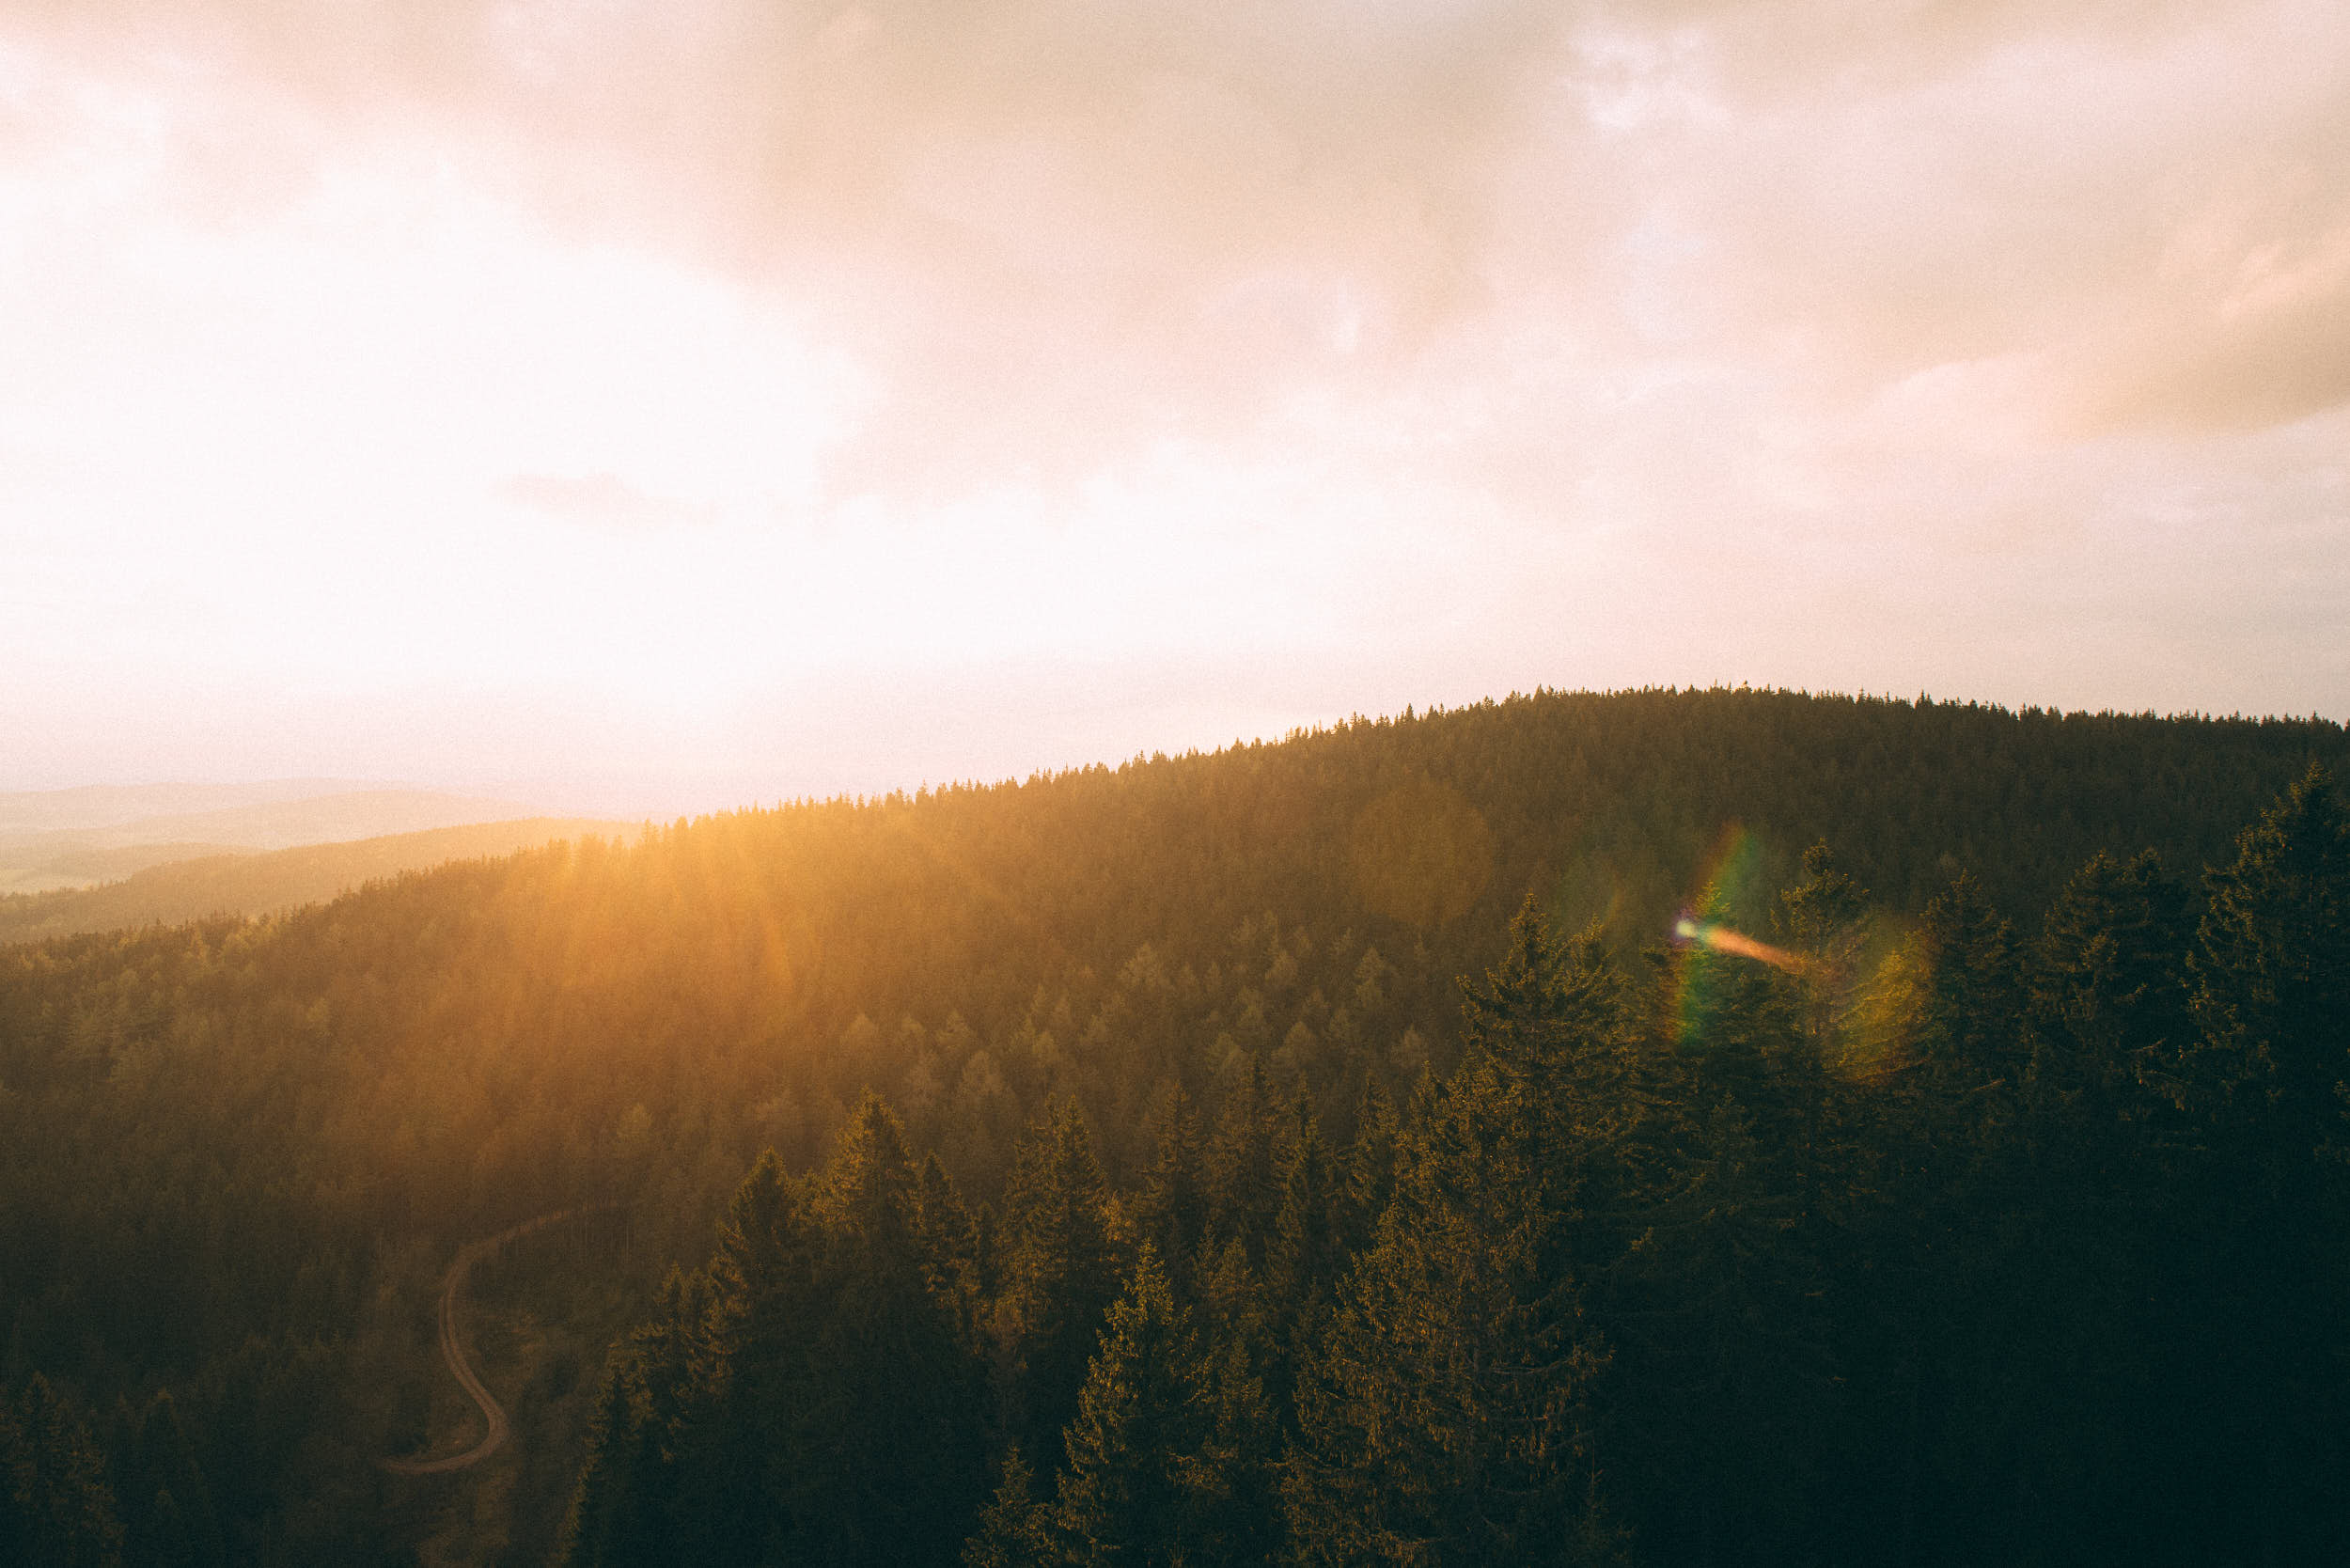 Beautiful sunrise above wooded landscape shot from elevated perspective.